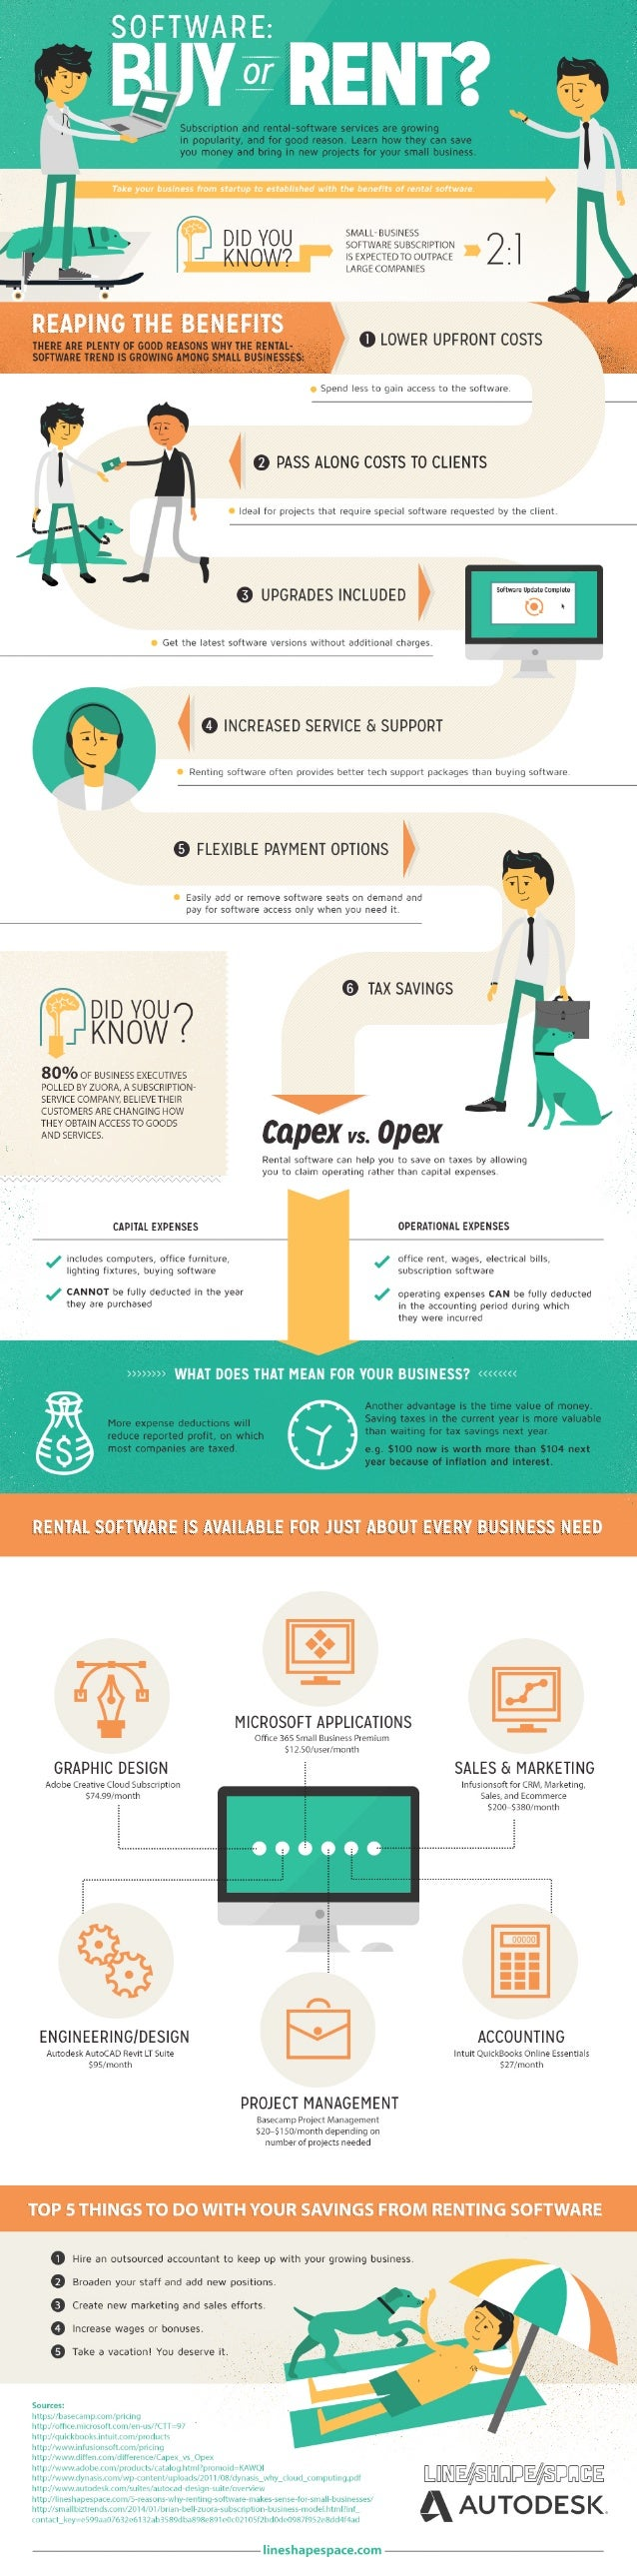 Autodesk software-rental-infographic